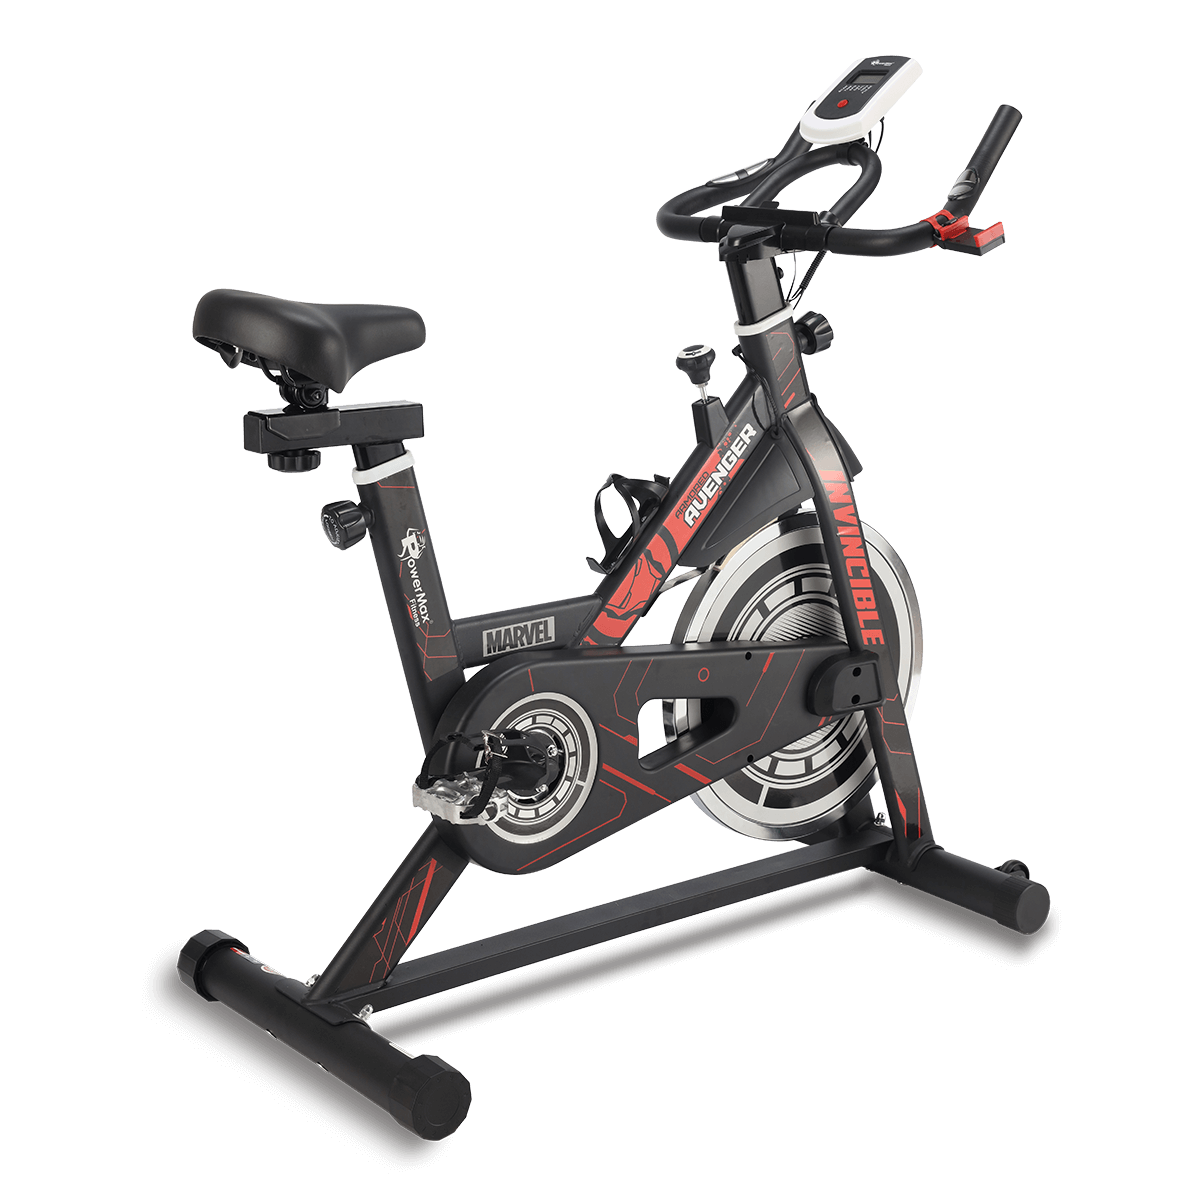 MB-145 Exercise Spin Bike for home use